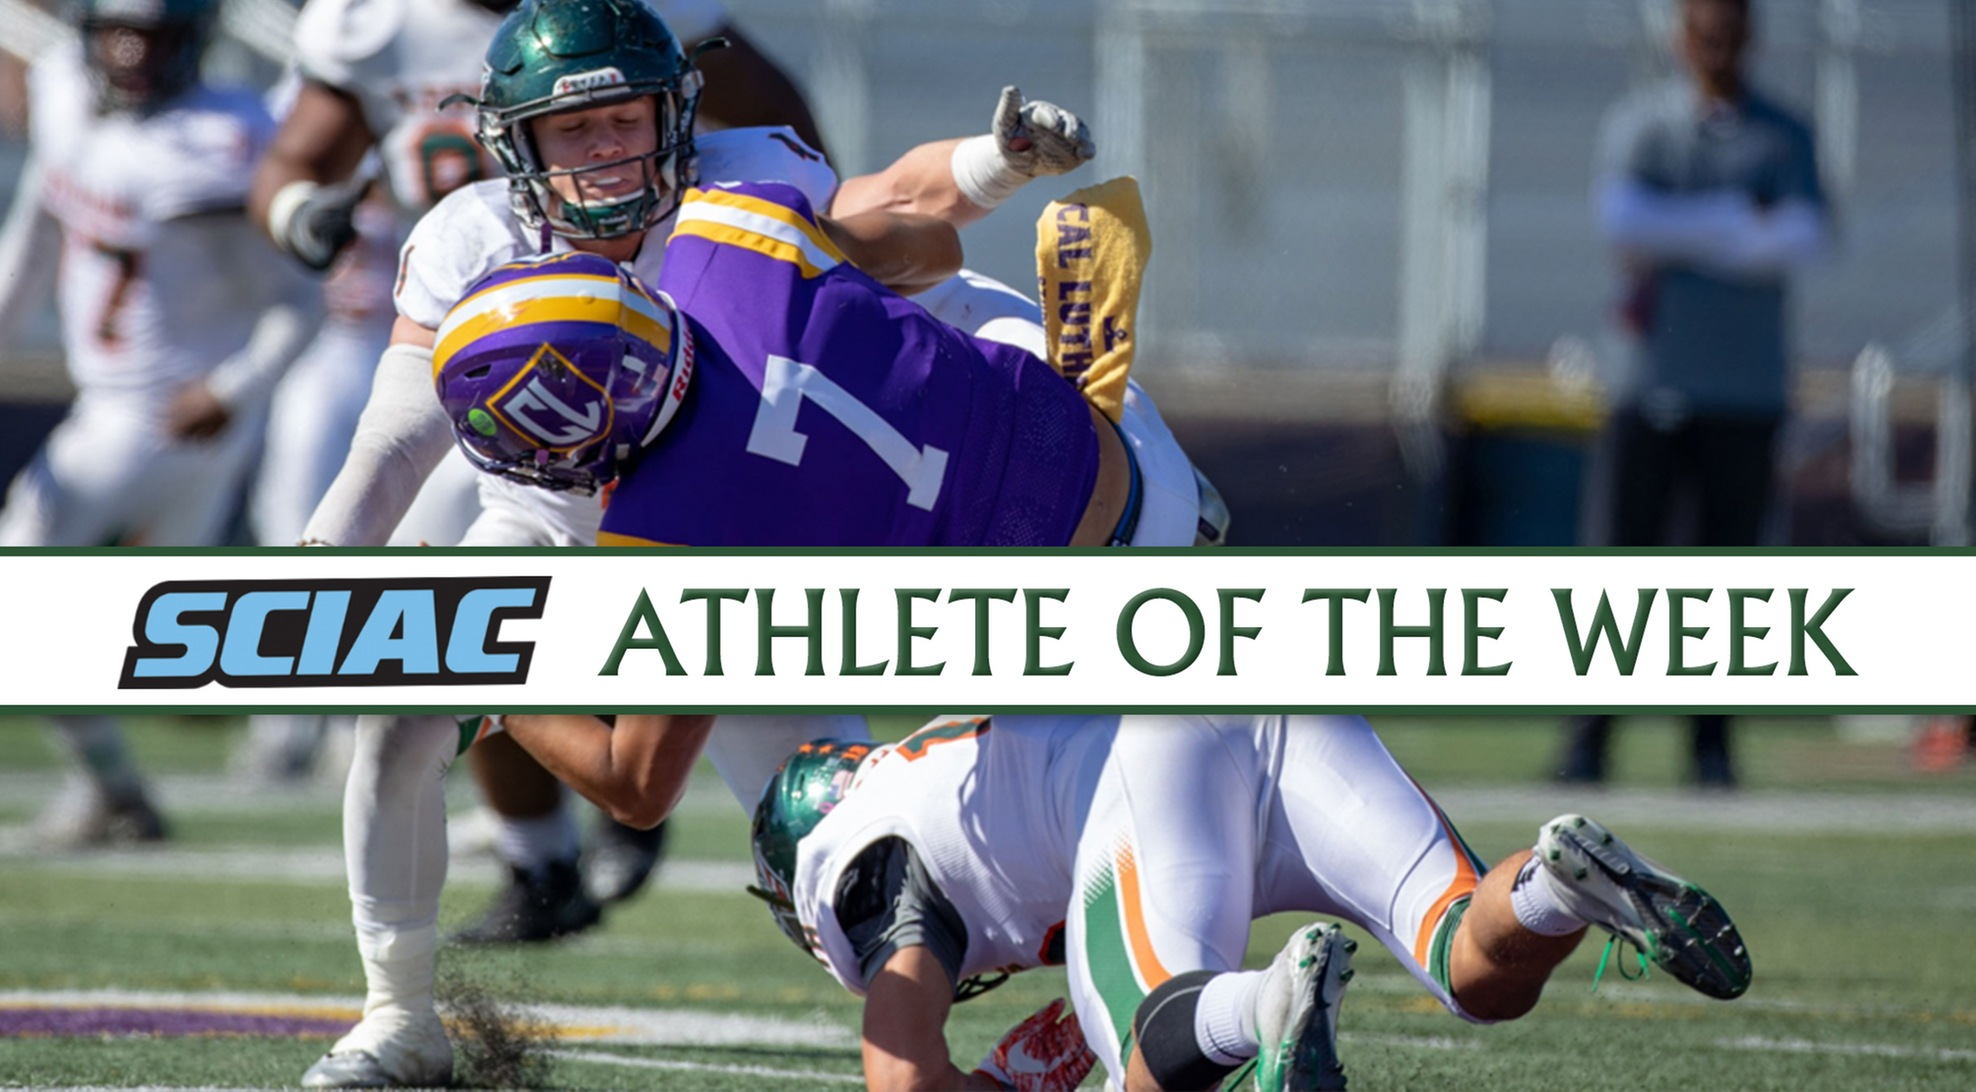 Johnson Named SCIAC Athlete of the Week